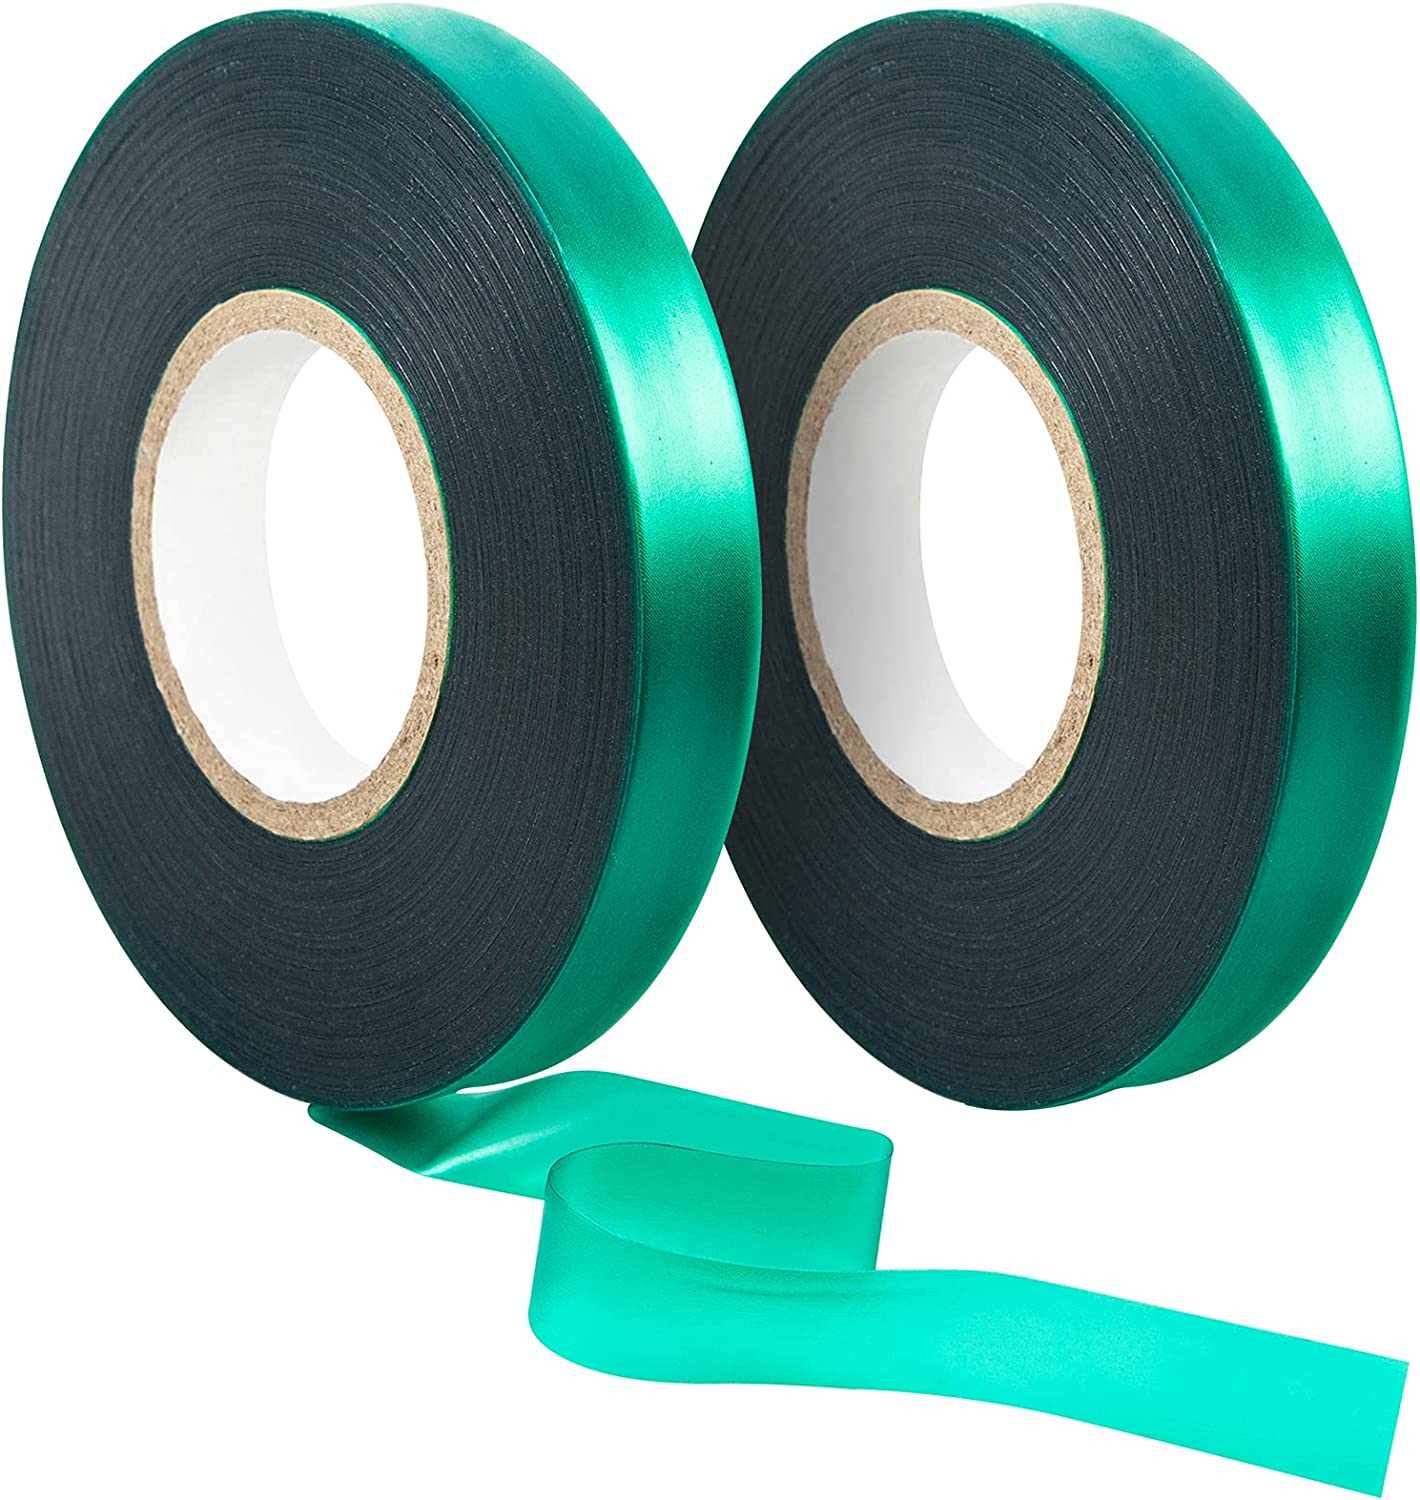 Unves 2 Pack Garden Tape Roll, 150 Ft Thick Reusable Green Plant Tape - 1/2